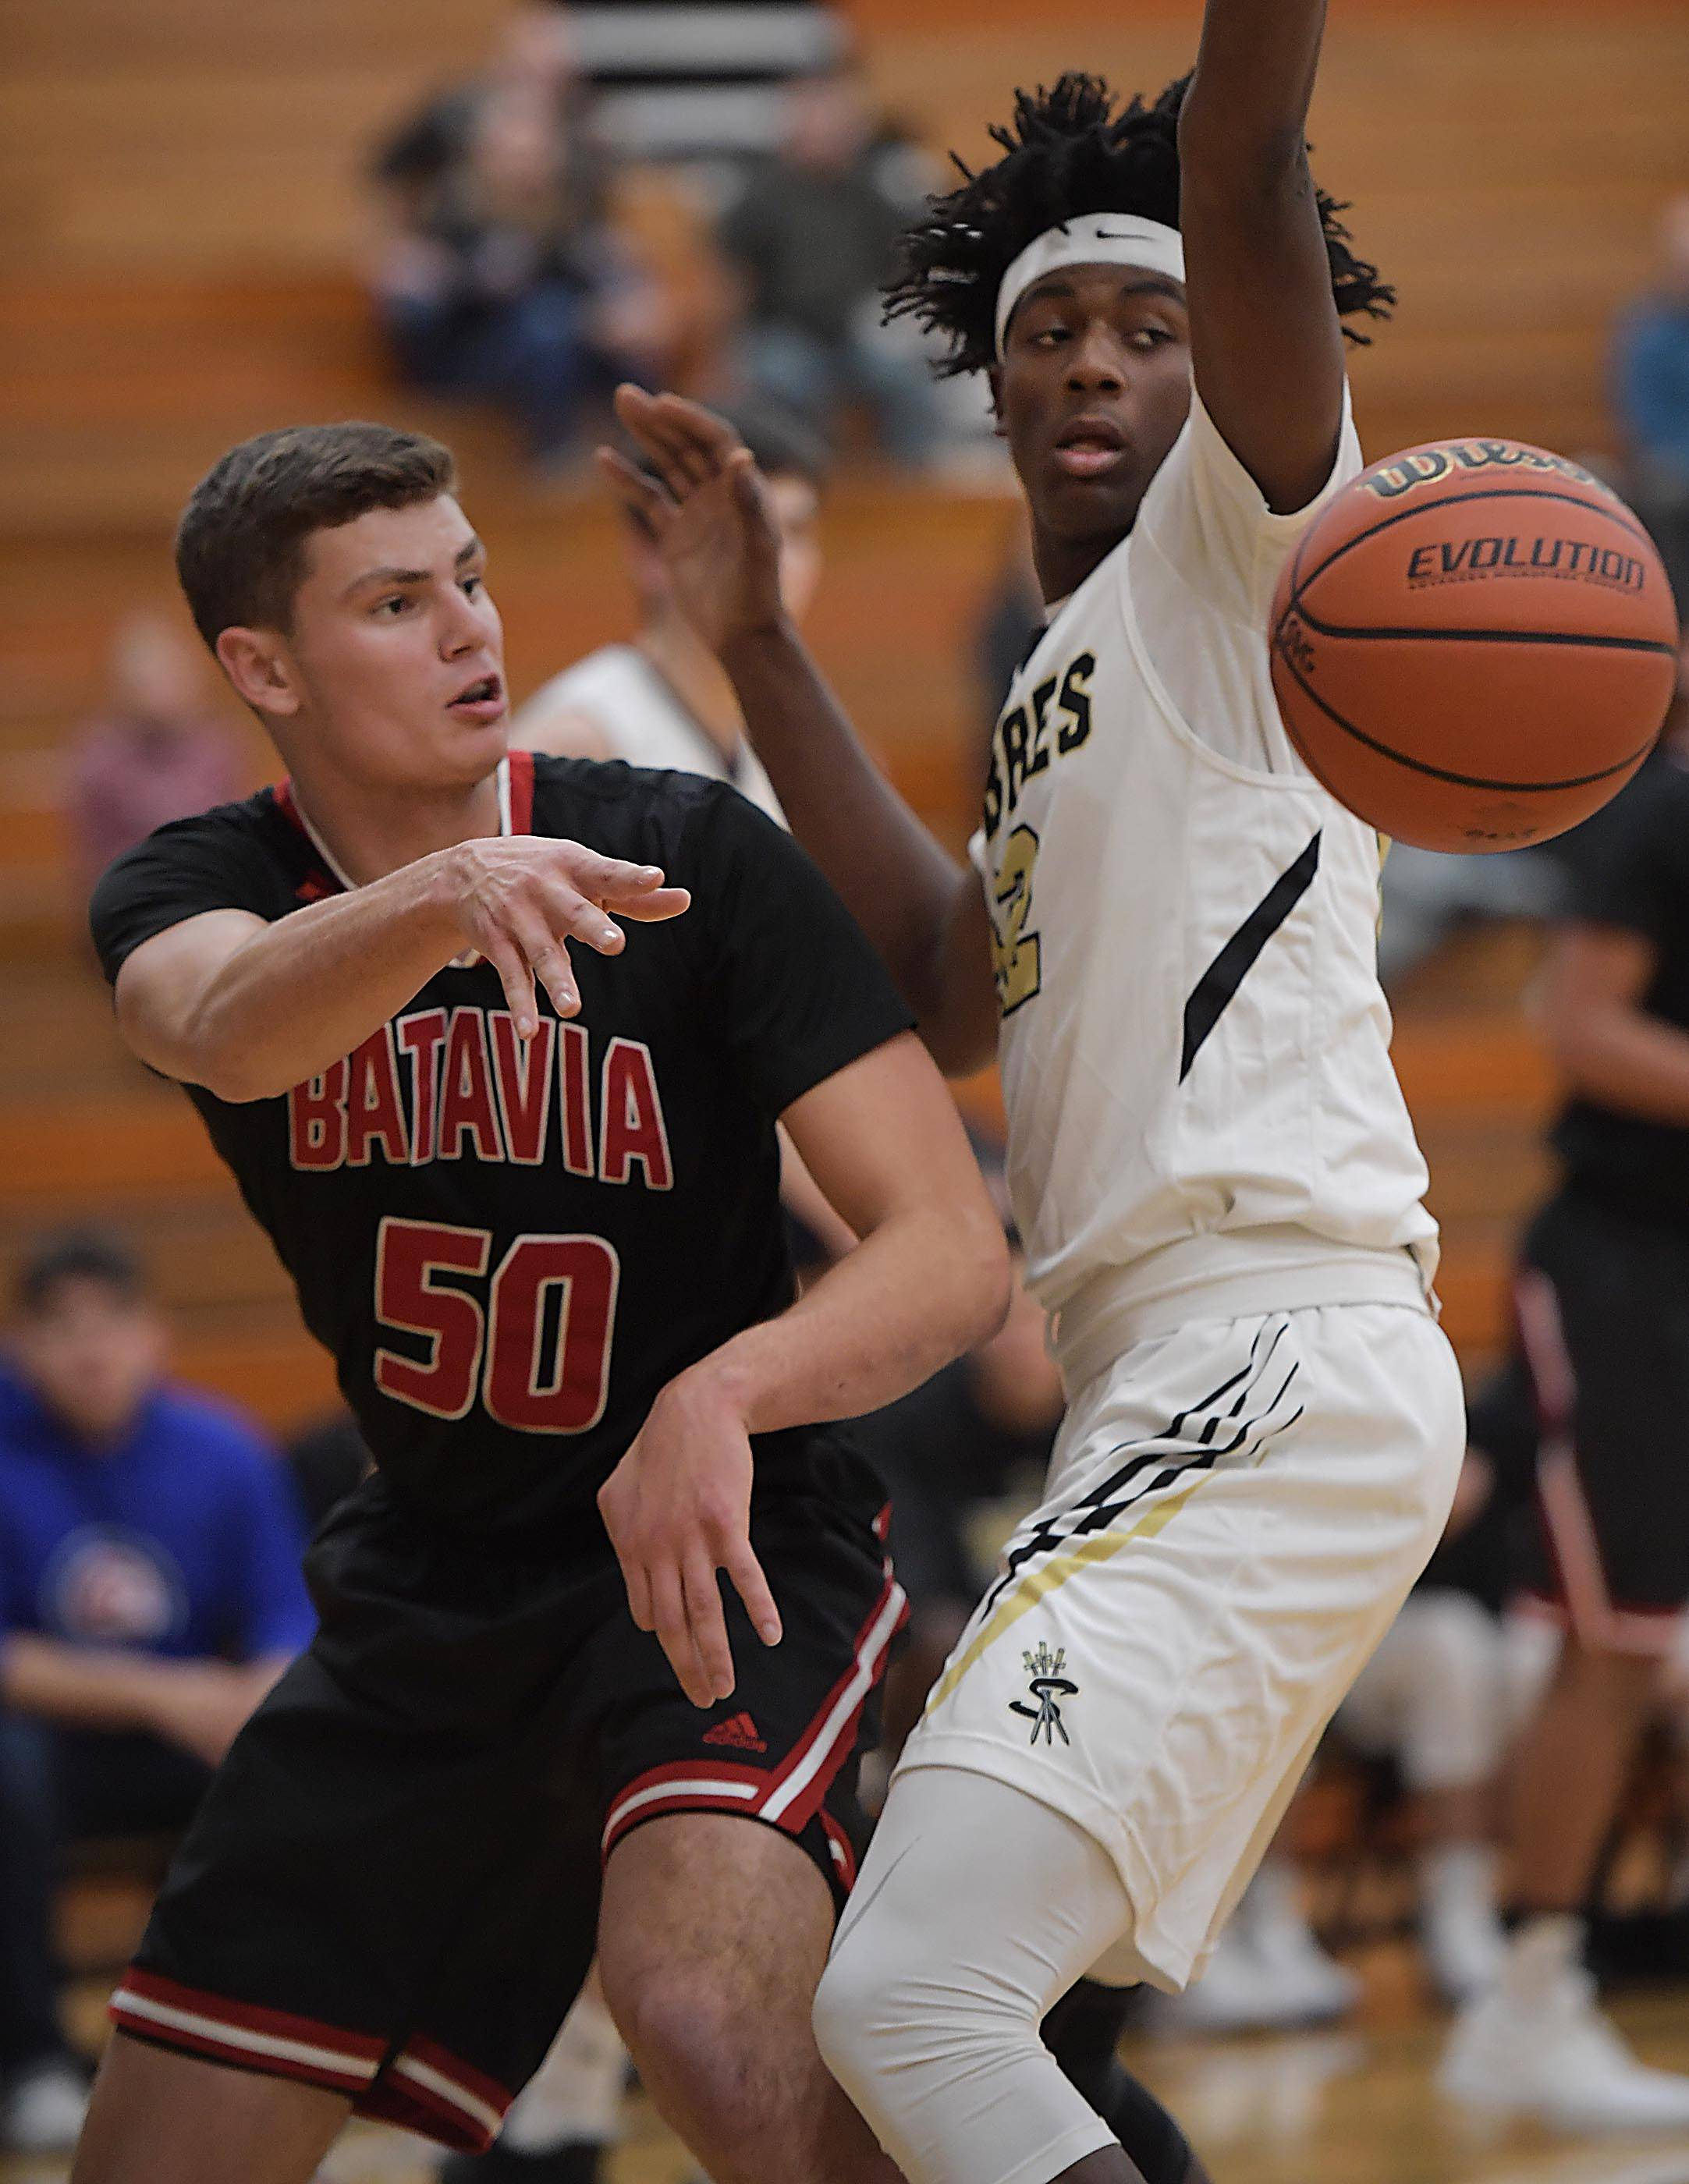 Batavia's Collin Richter passes around Streamwood's Keenan Cole in Streamwood Friday night.